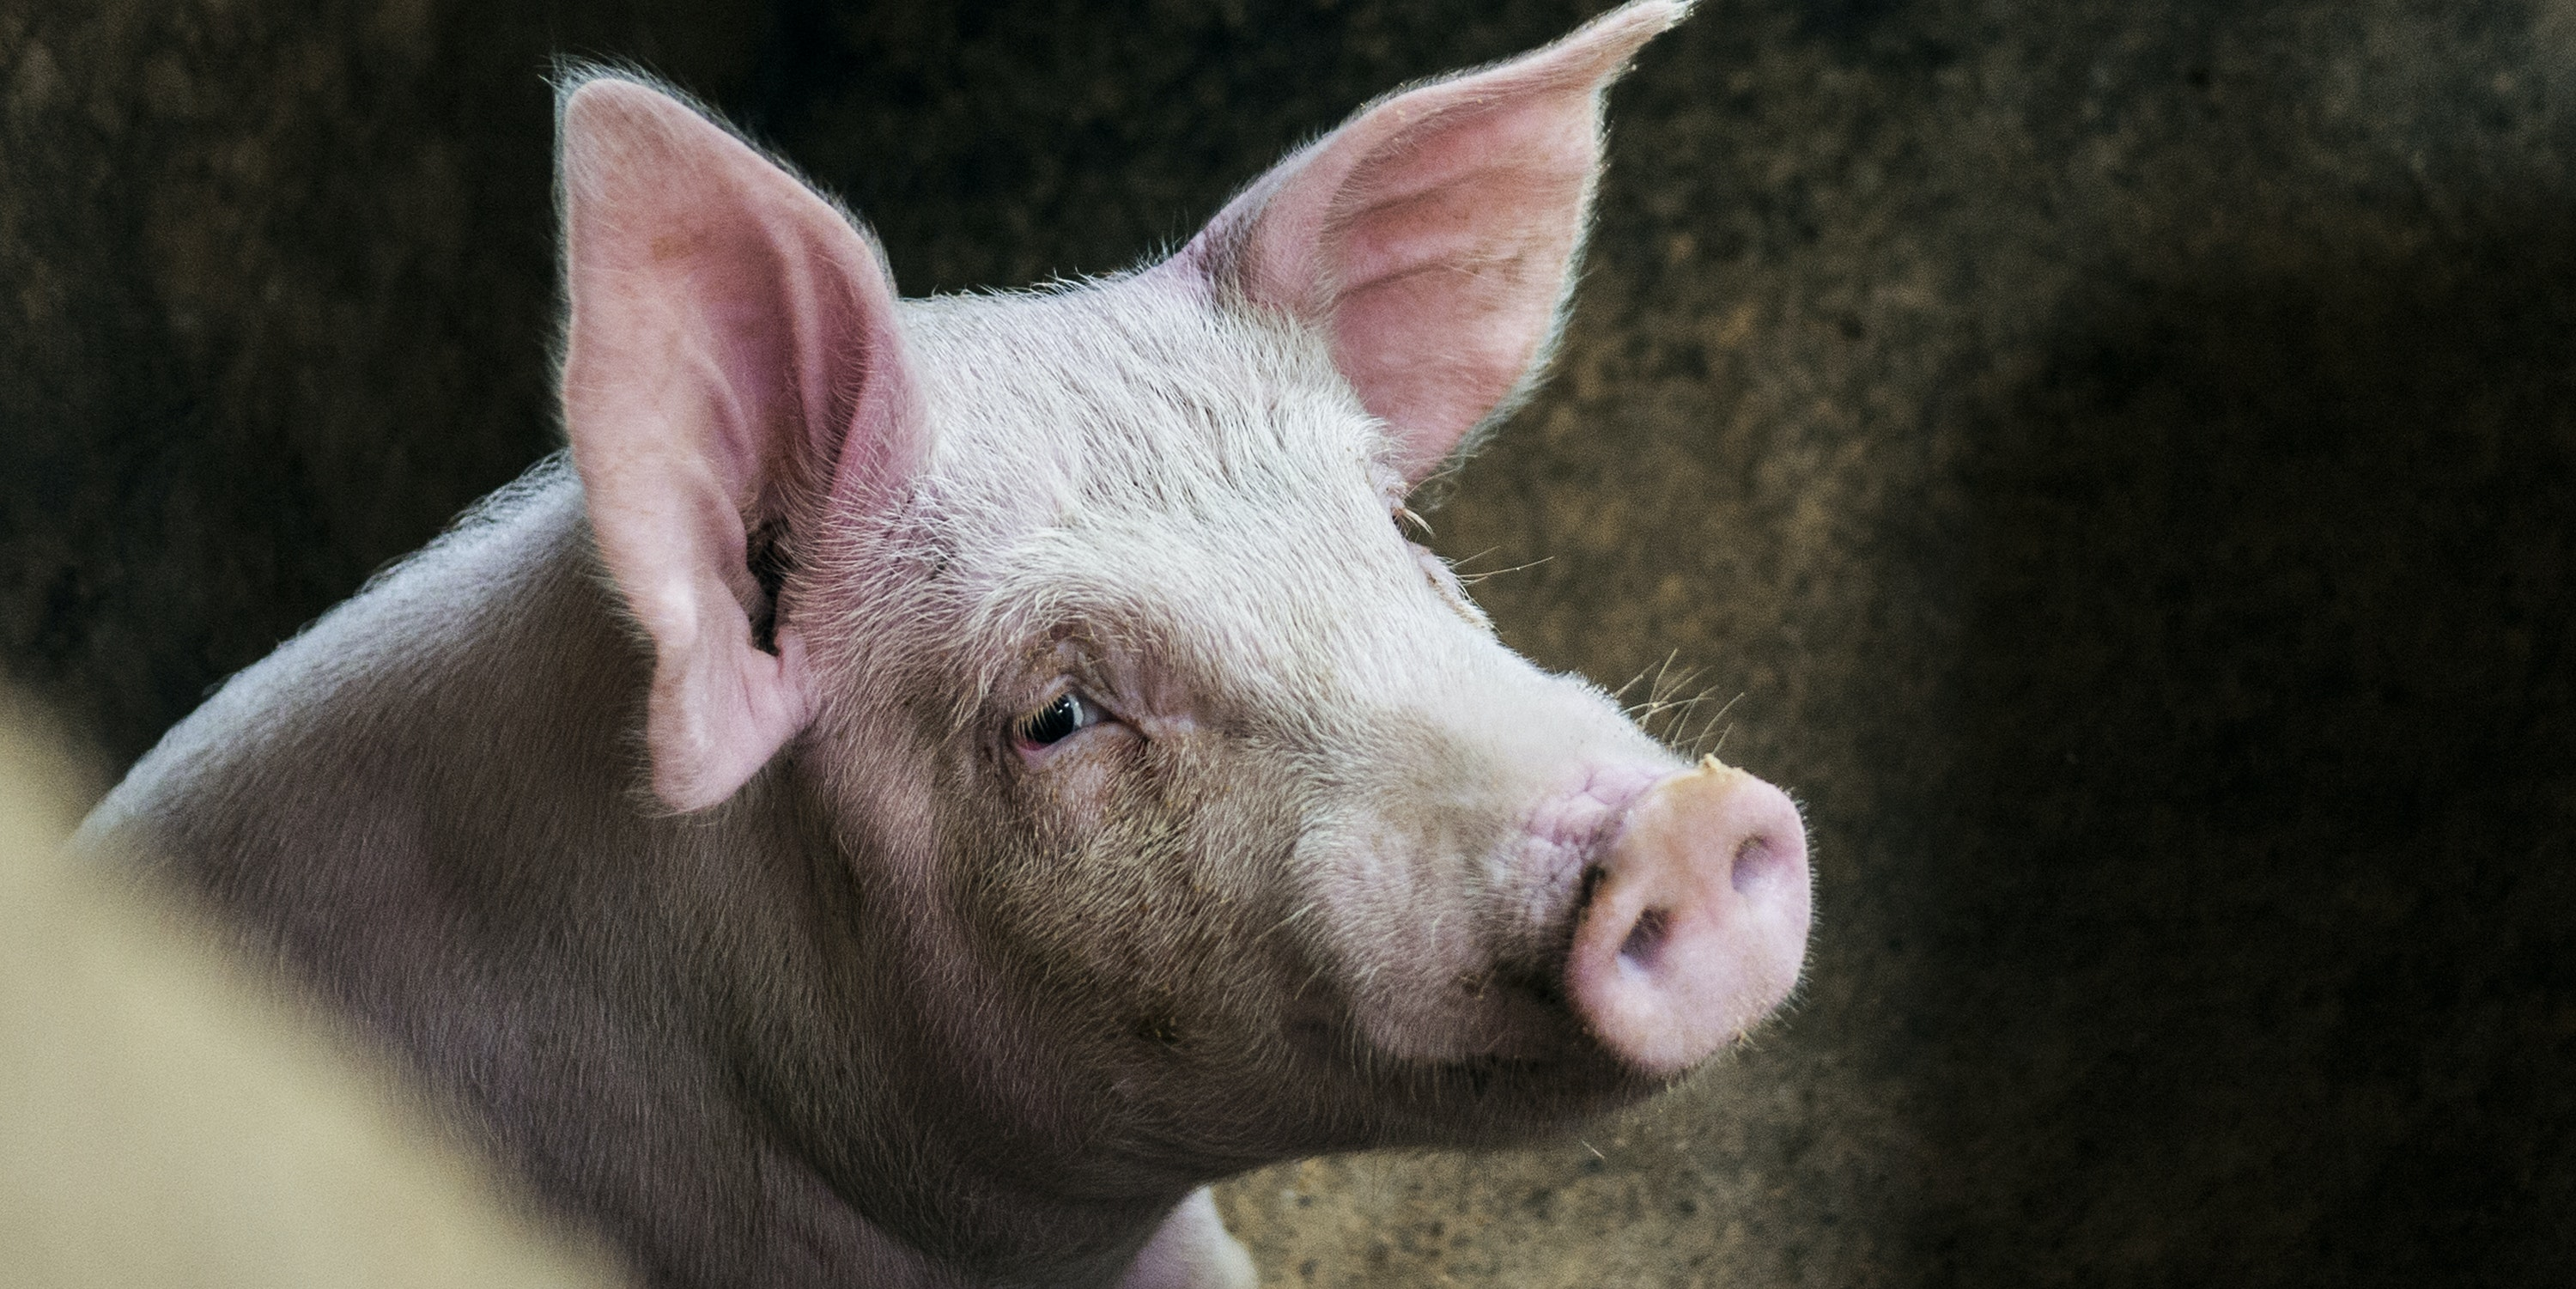 Pigs Were Slaughtered, Then Scientists Revived Their Brains 4 Hours Later